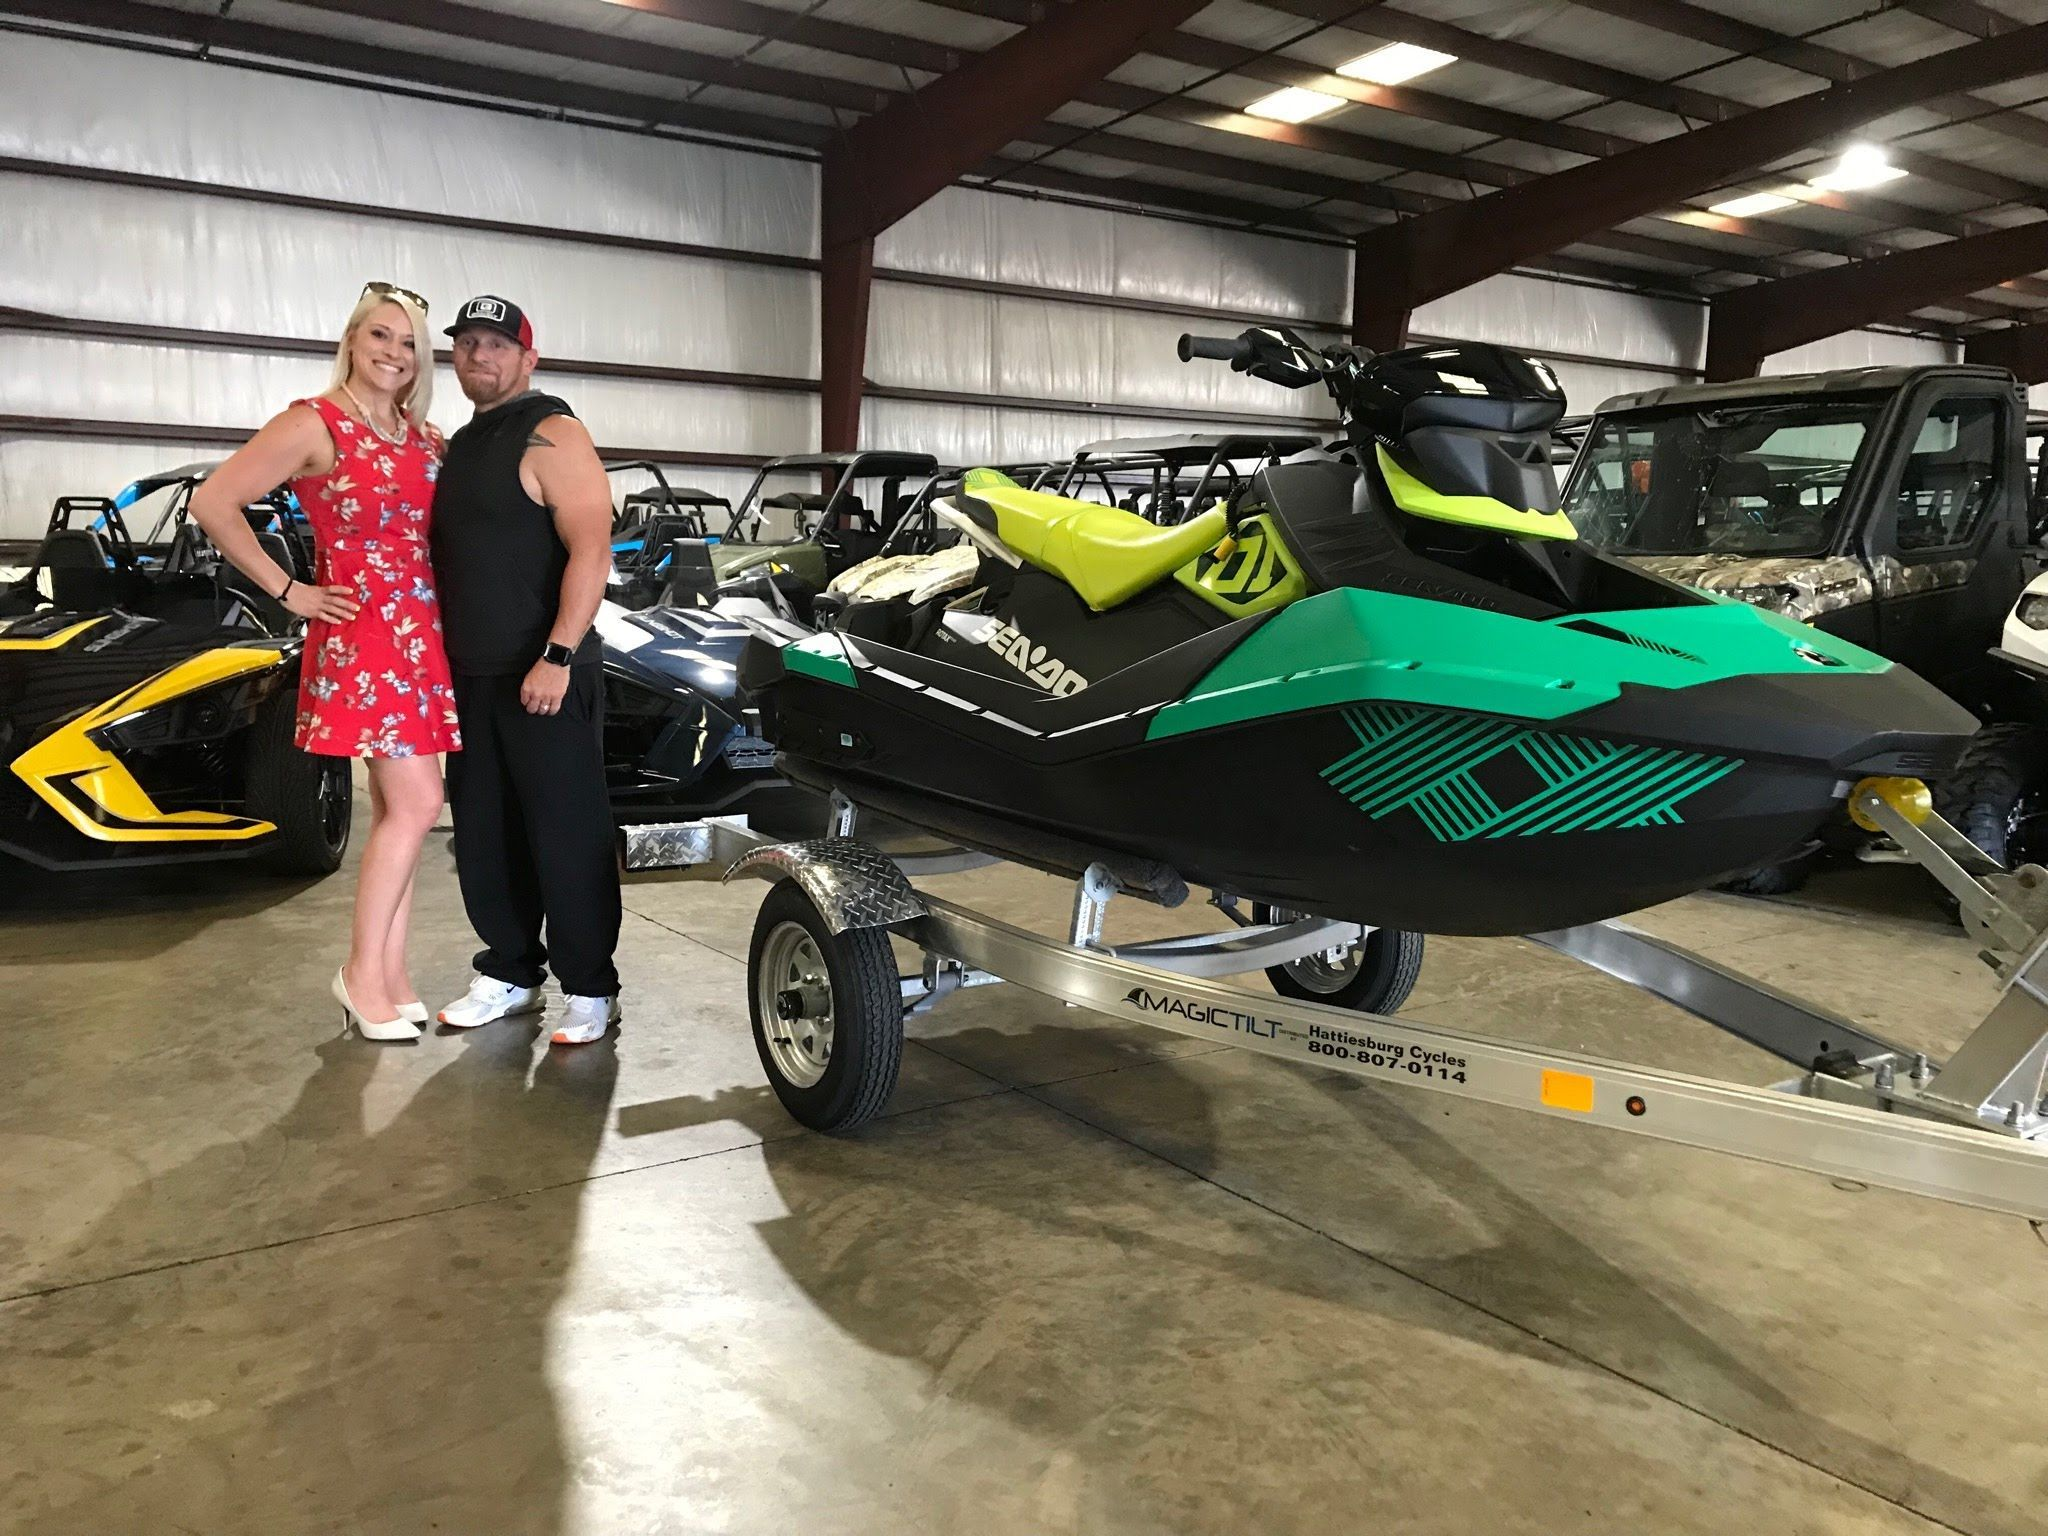 Congratulations To Sarah Marie And Brian Rutherford From Hattiesburg Ms For Purchasing A 2019 Sea Doo Spark Trixx At Hattiesburg Cyc Hattiesburg Seadoo Racing